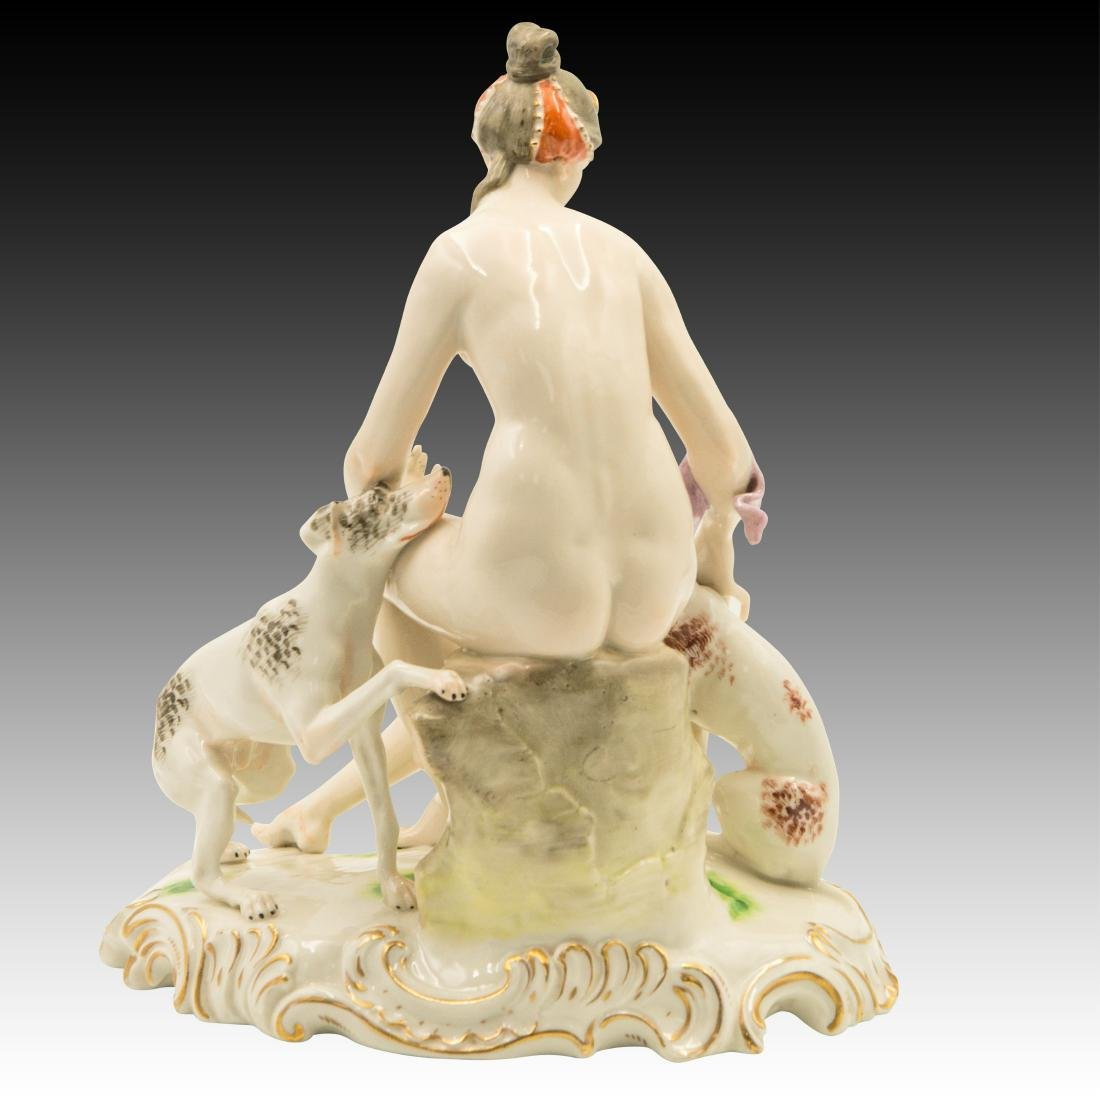 Ceramic Figurine of a Nude Woman and her Dogs - 3